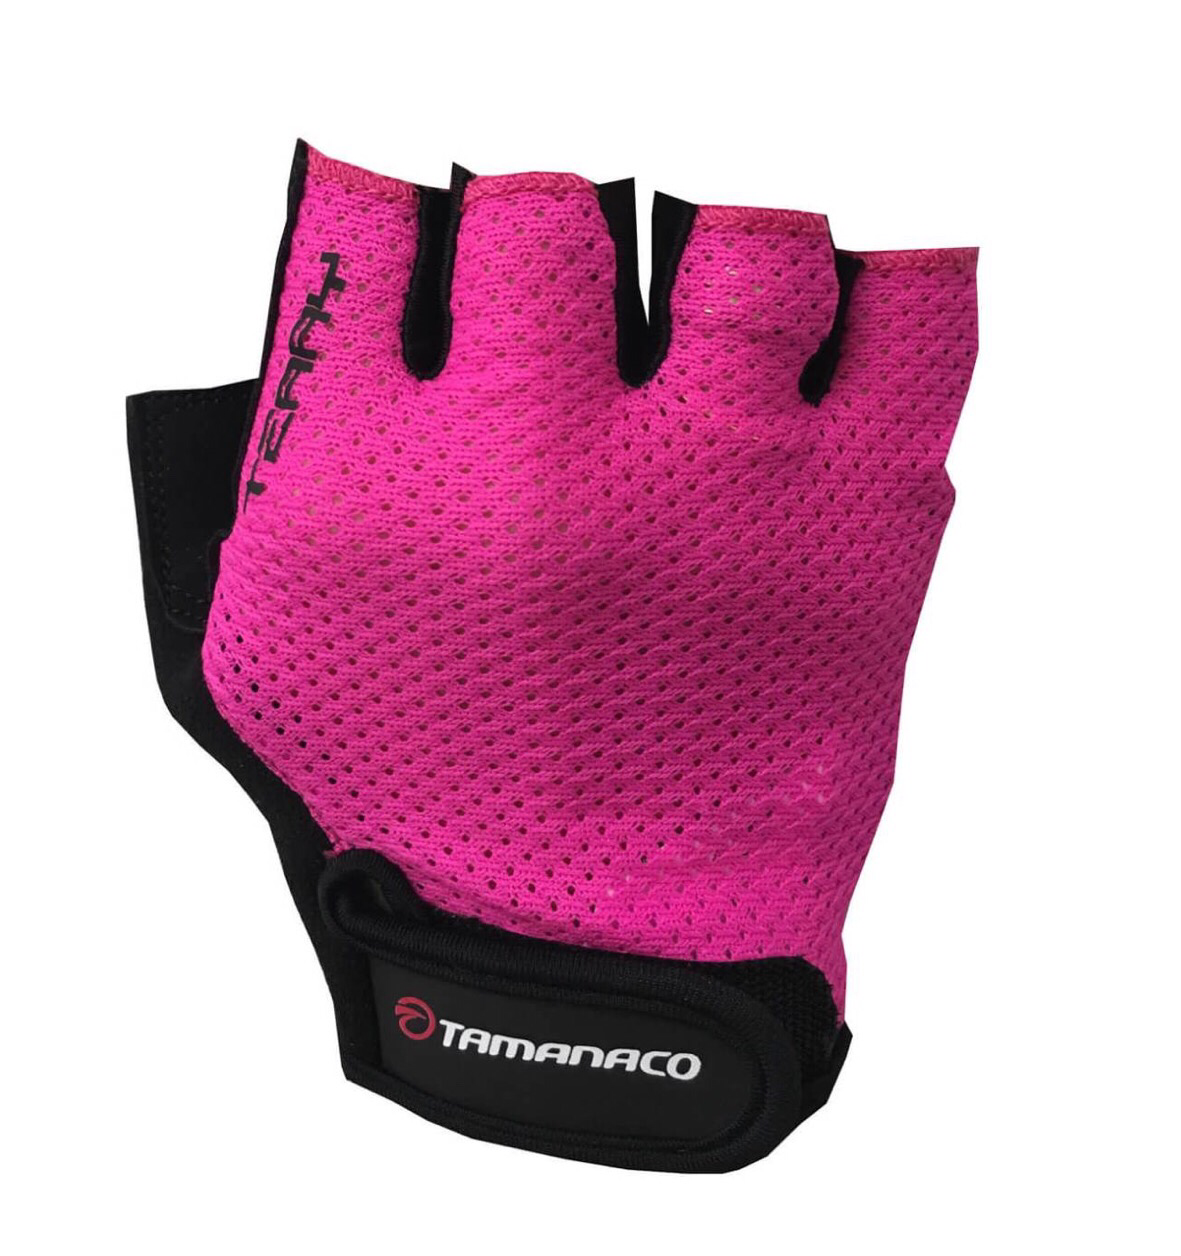 Tamanaco Fitness Glove Cycling Gloves